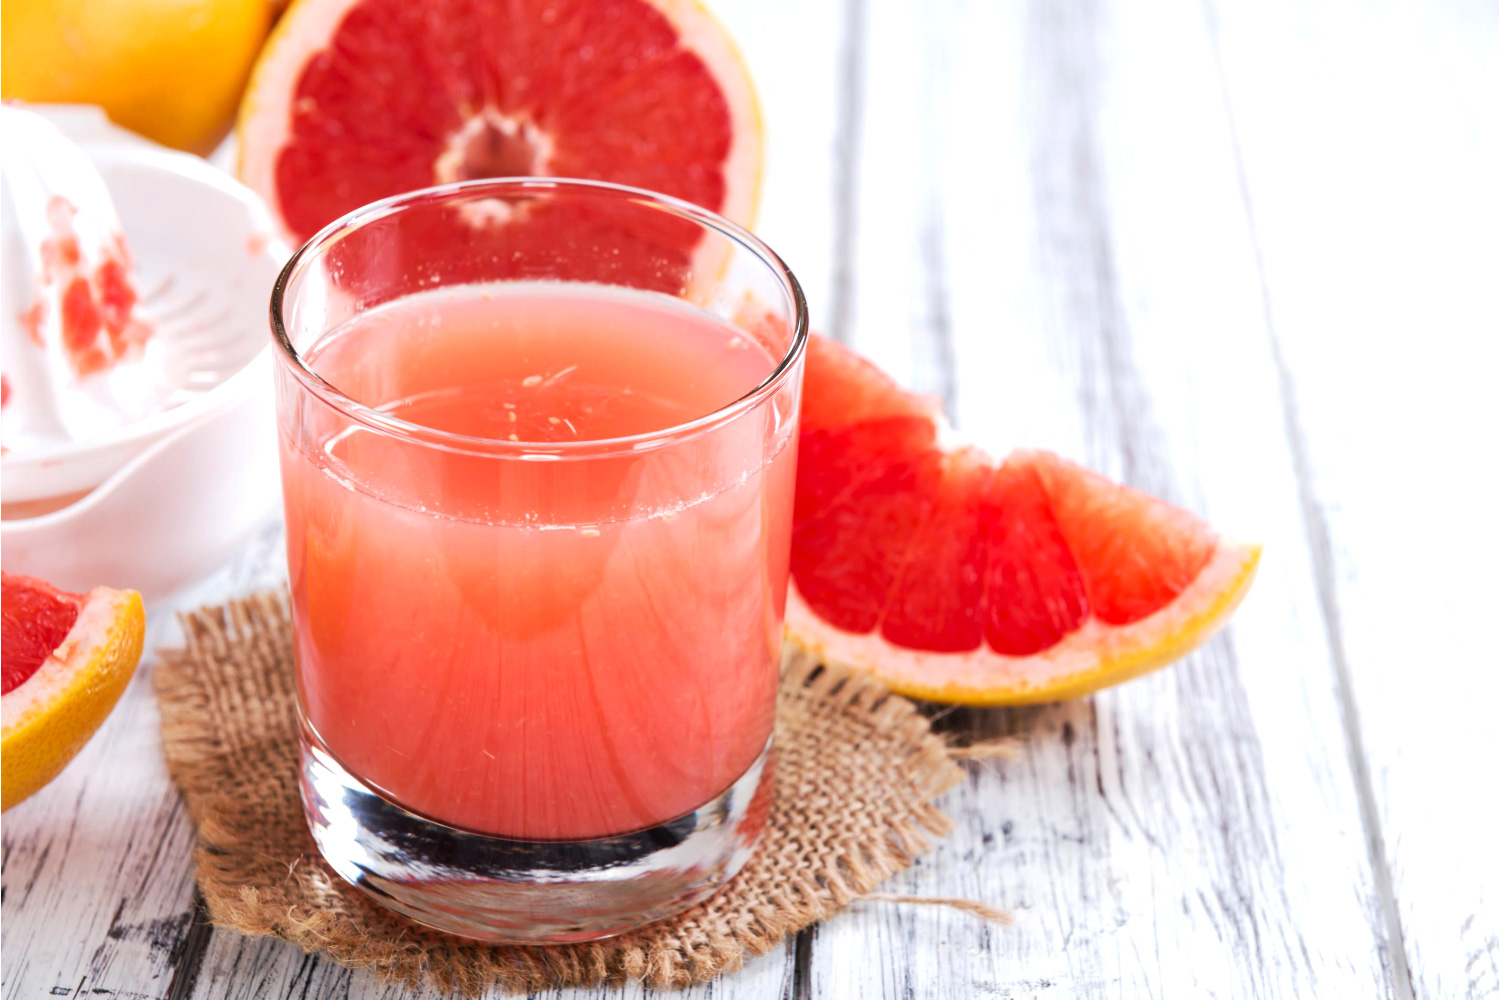 Grapefruit - Boost your Metabolism and Lose Weight